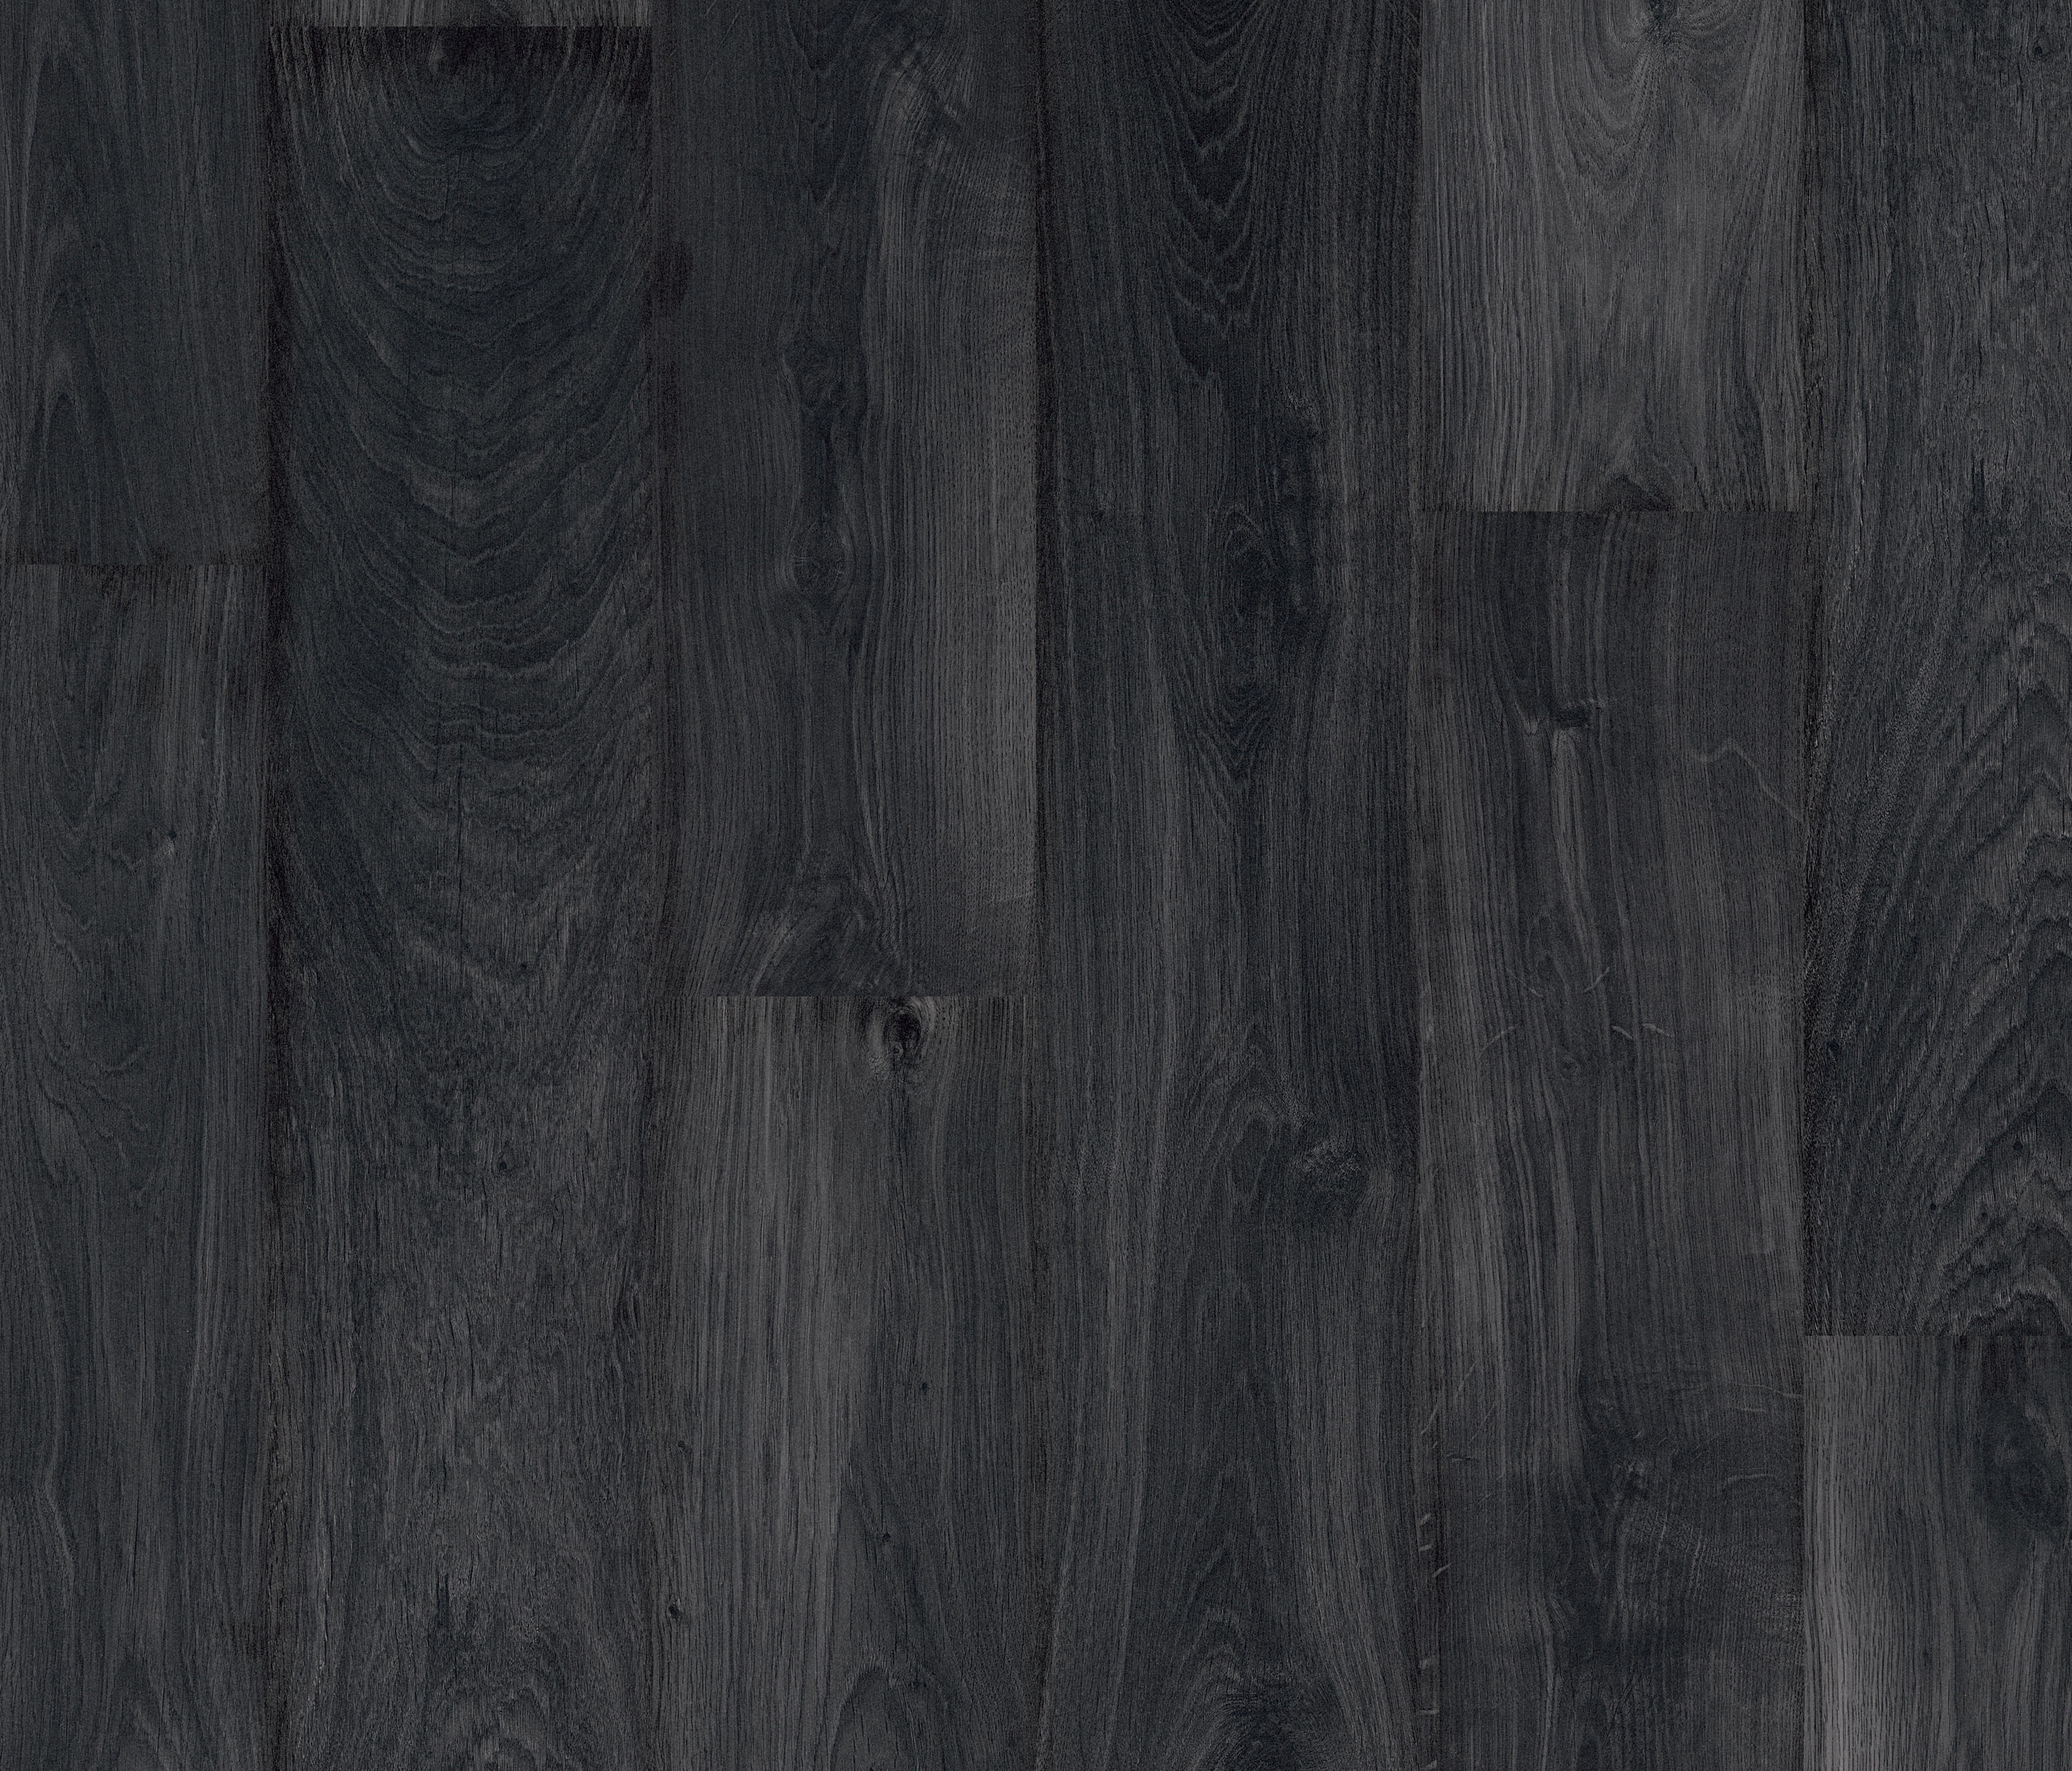 Classic Plank Black Oak Laminates From Pergo Architonic